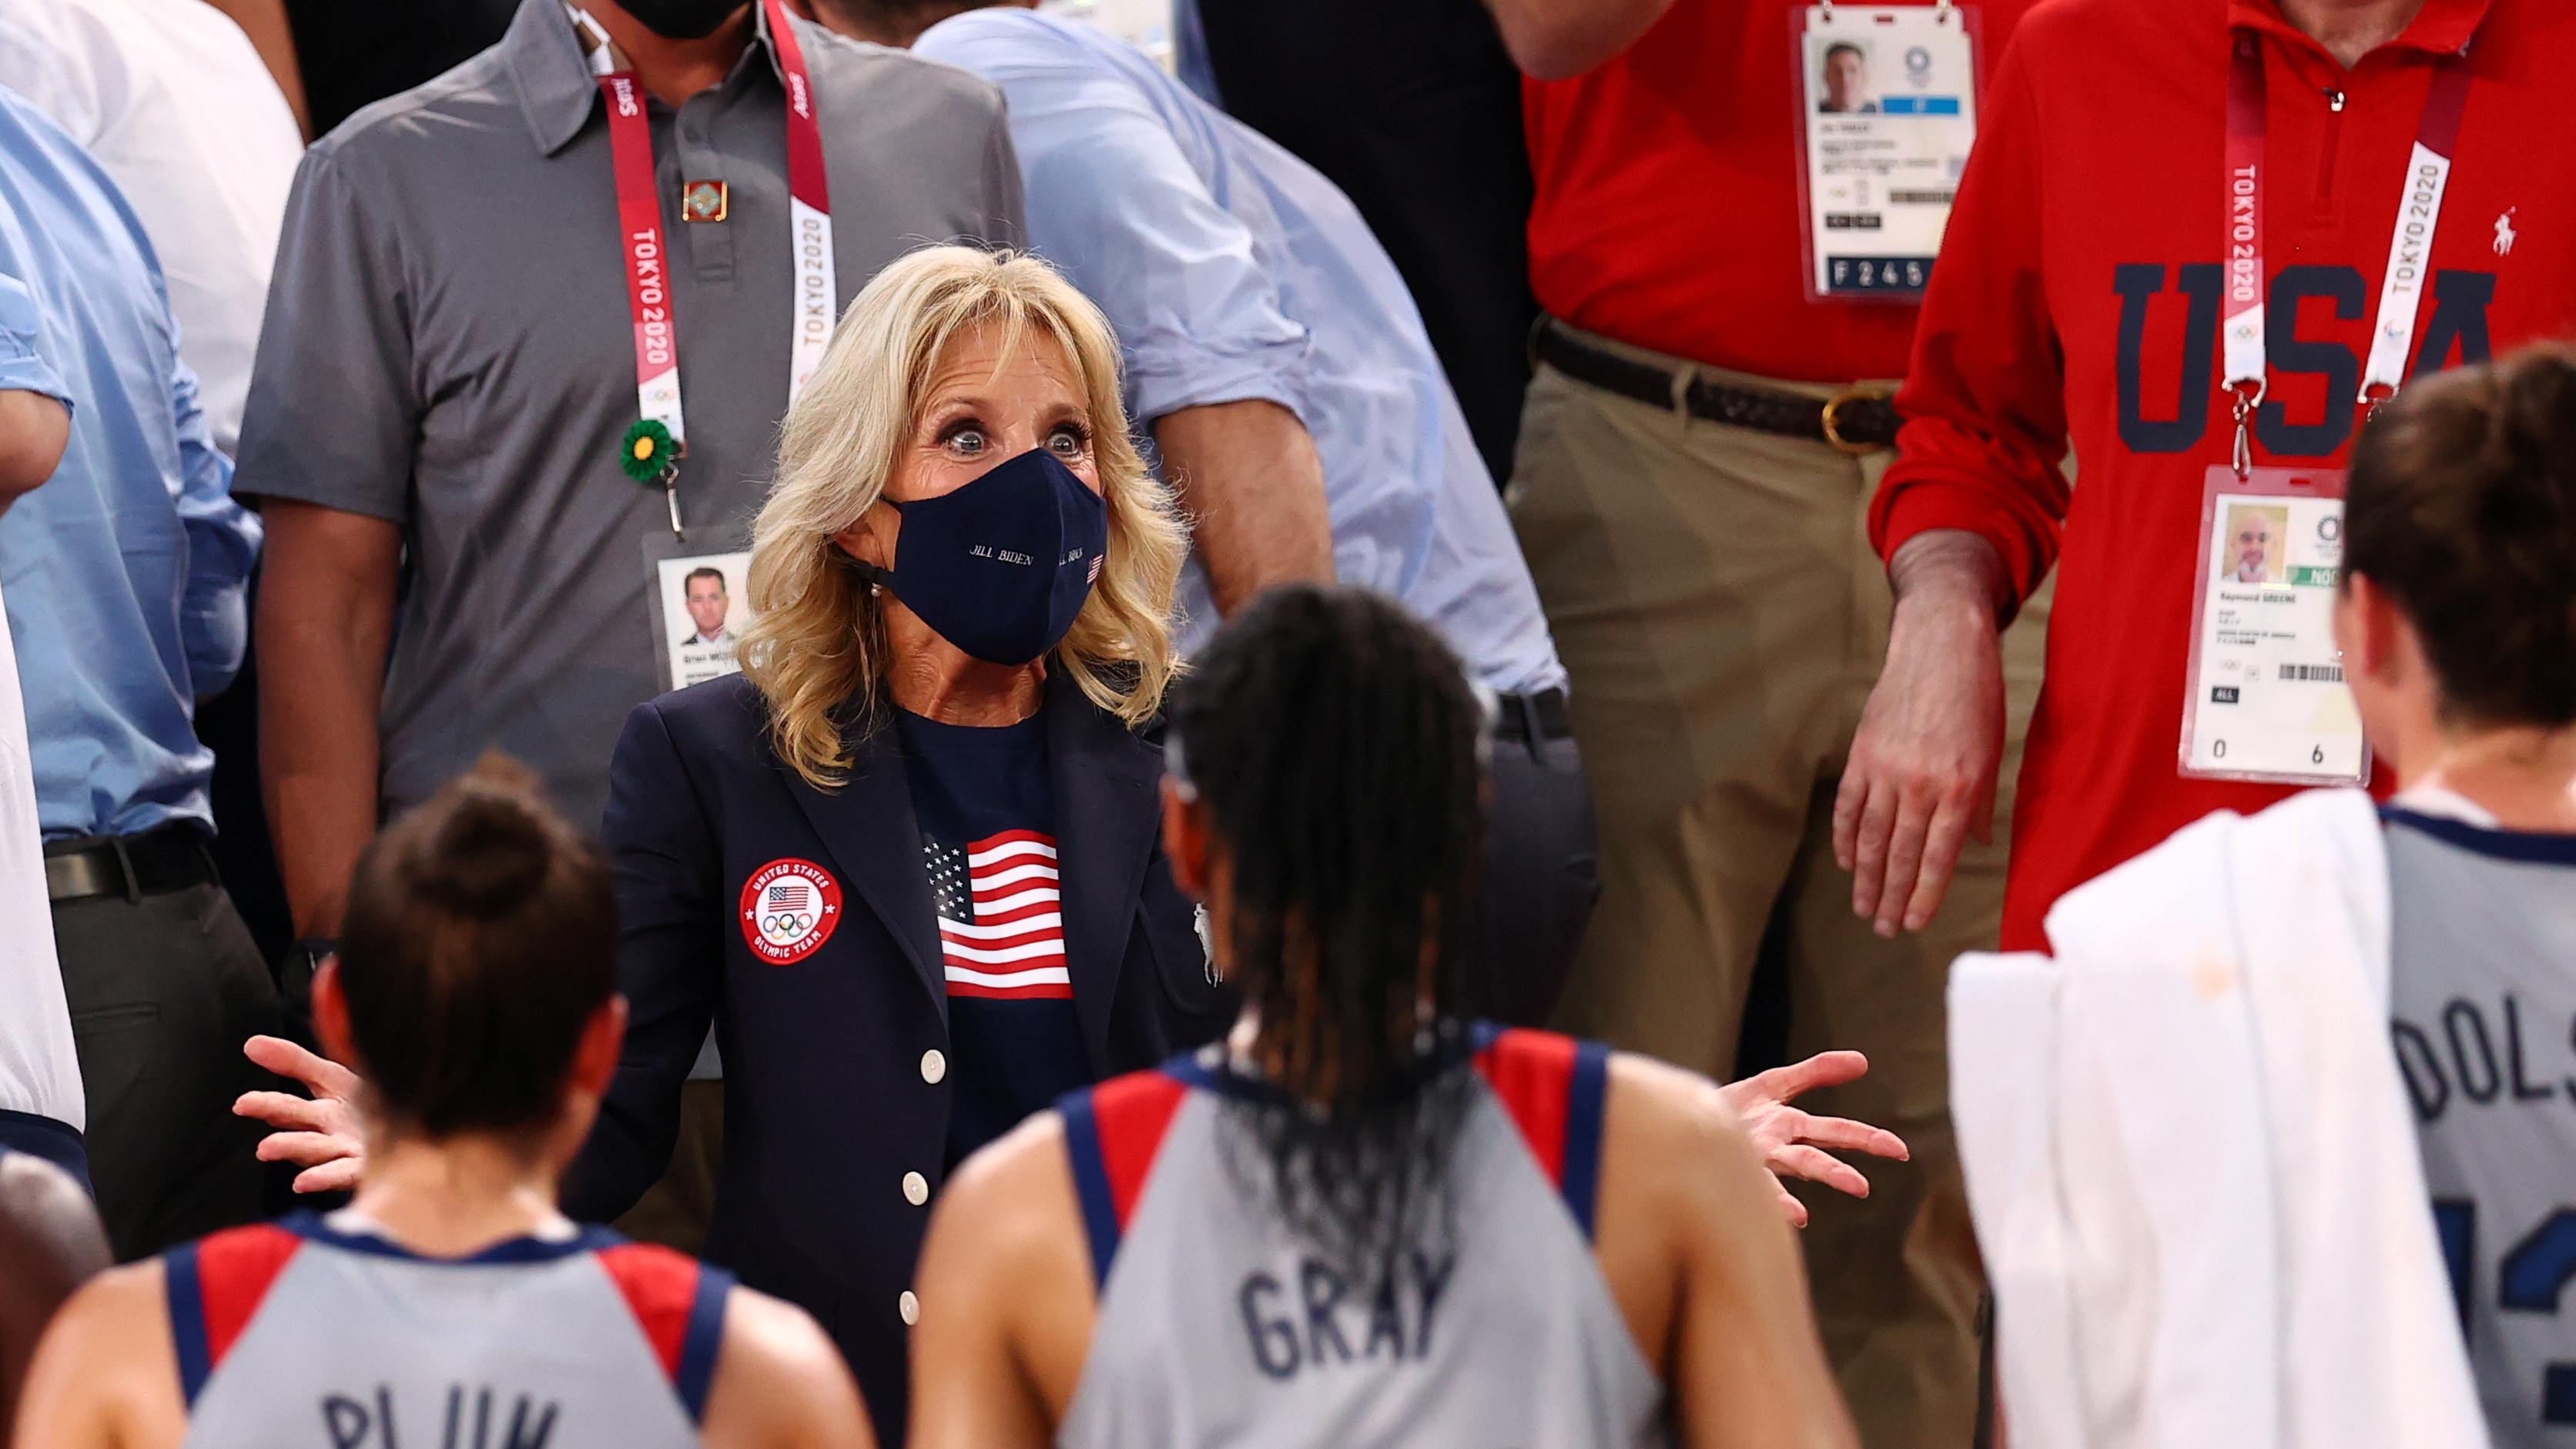 Tokyo 2020 Olympics - Basketball 3x3 - Women - Pool A - United States v France - Aomi Urban Sports Park, Tokyo, Japan - July 24, 2021. U.S. First Lady Jill Biden talks with players of the United States. REUTERS/Andrew Boyers